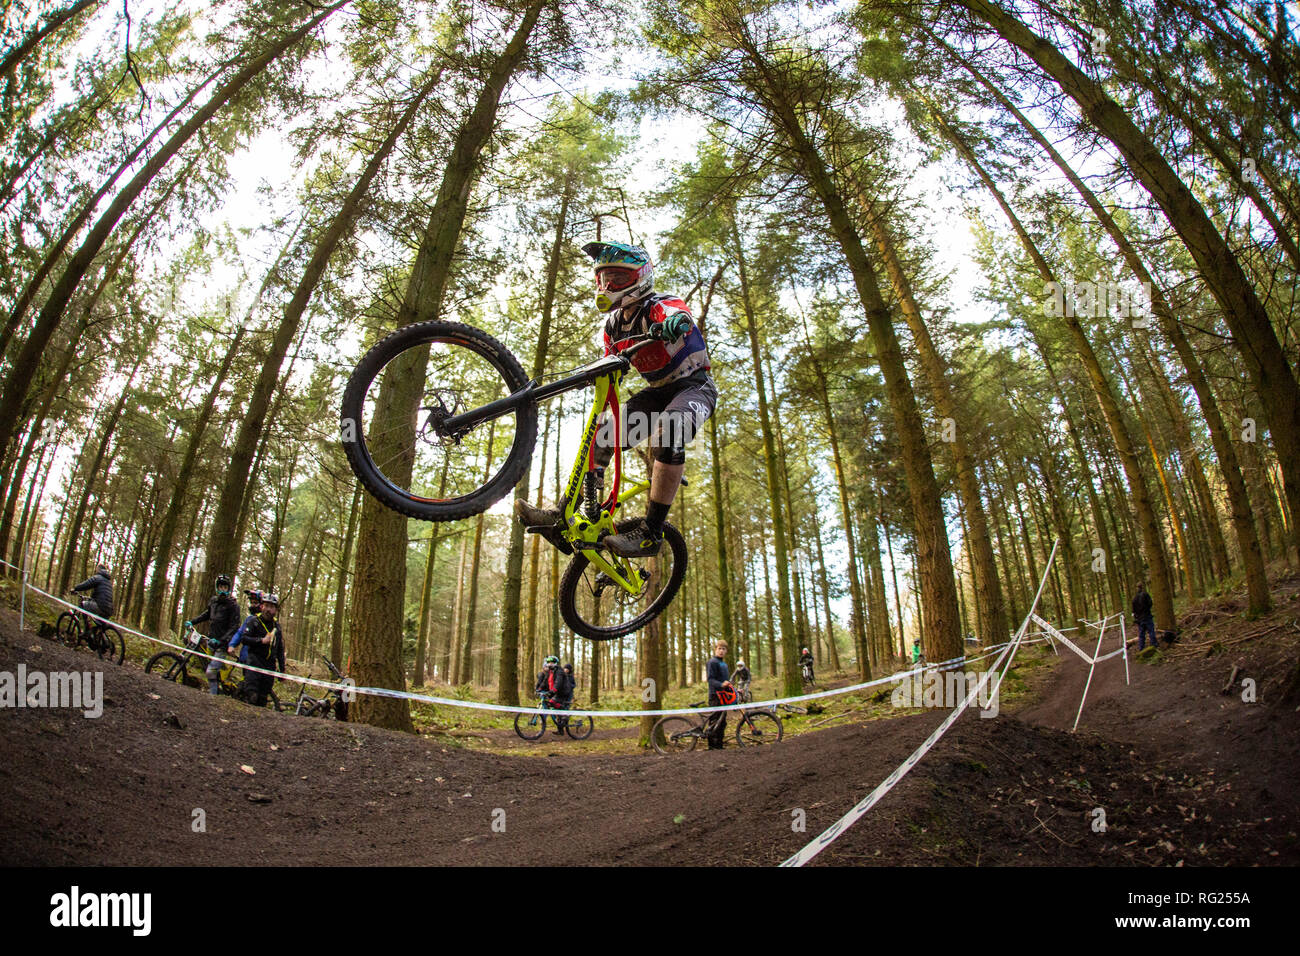 Corkscrew, Forest of Dean, Gloucesteshire, UK. 27th January 2019. Youth athlete, Rockett Jonny, from 15-16 category completes his 1st run at Onza Mini Downhill at the Forest of Dean in 1:00.93. Age categories range from 10-12 to 50+. The race has hosted big names in the past, including Manon Carpenter, ex-World Champion from Caerphilly, South Wales. Credit: Kerry Elsworth/Alamy Live News - Stock Image